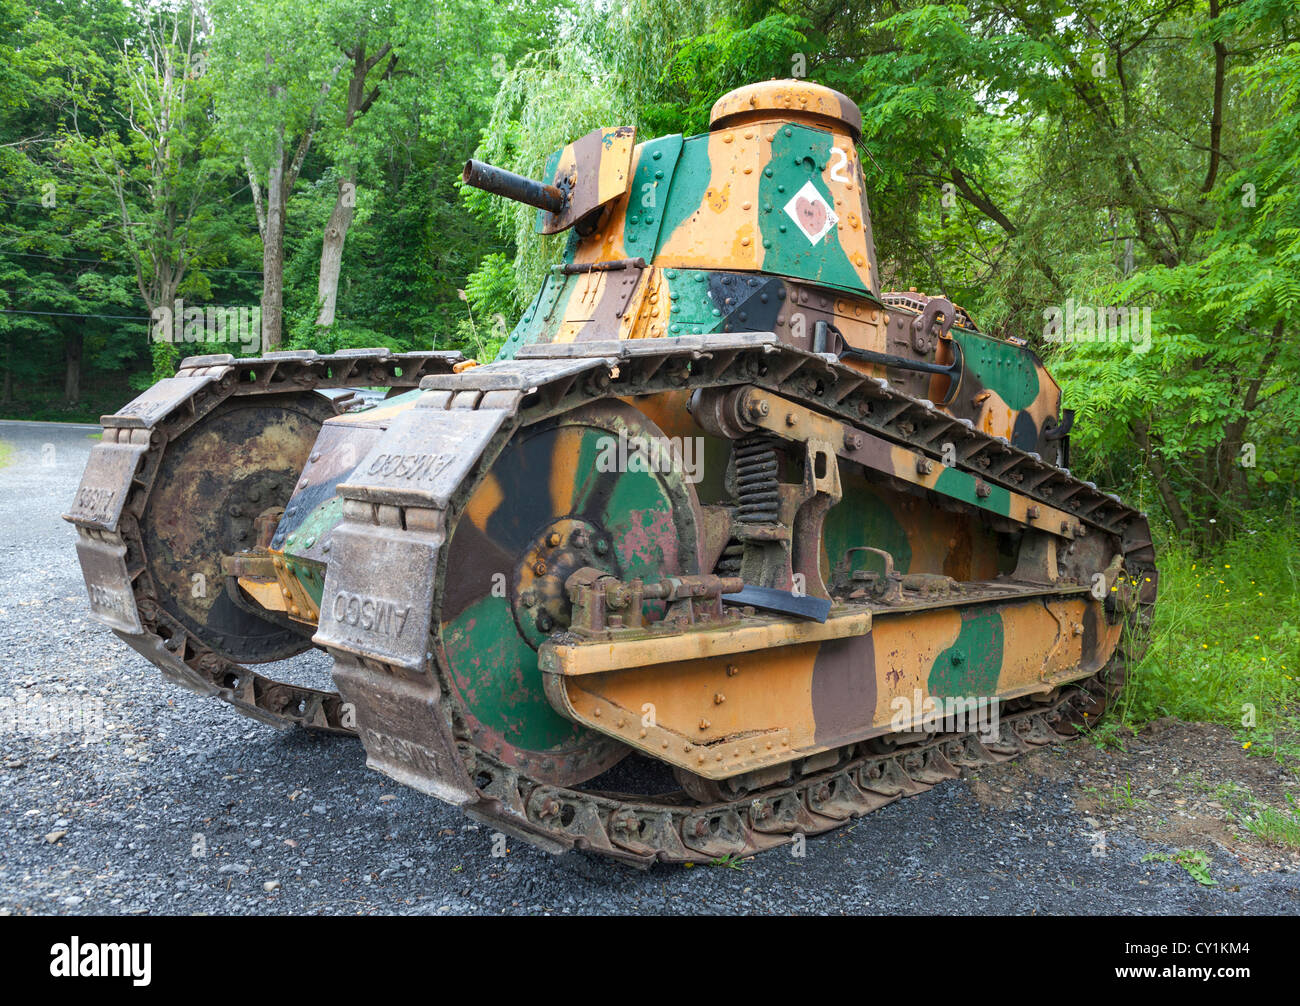 A close view of a Renault FT-17 World War I tank. - Stock Image